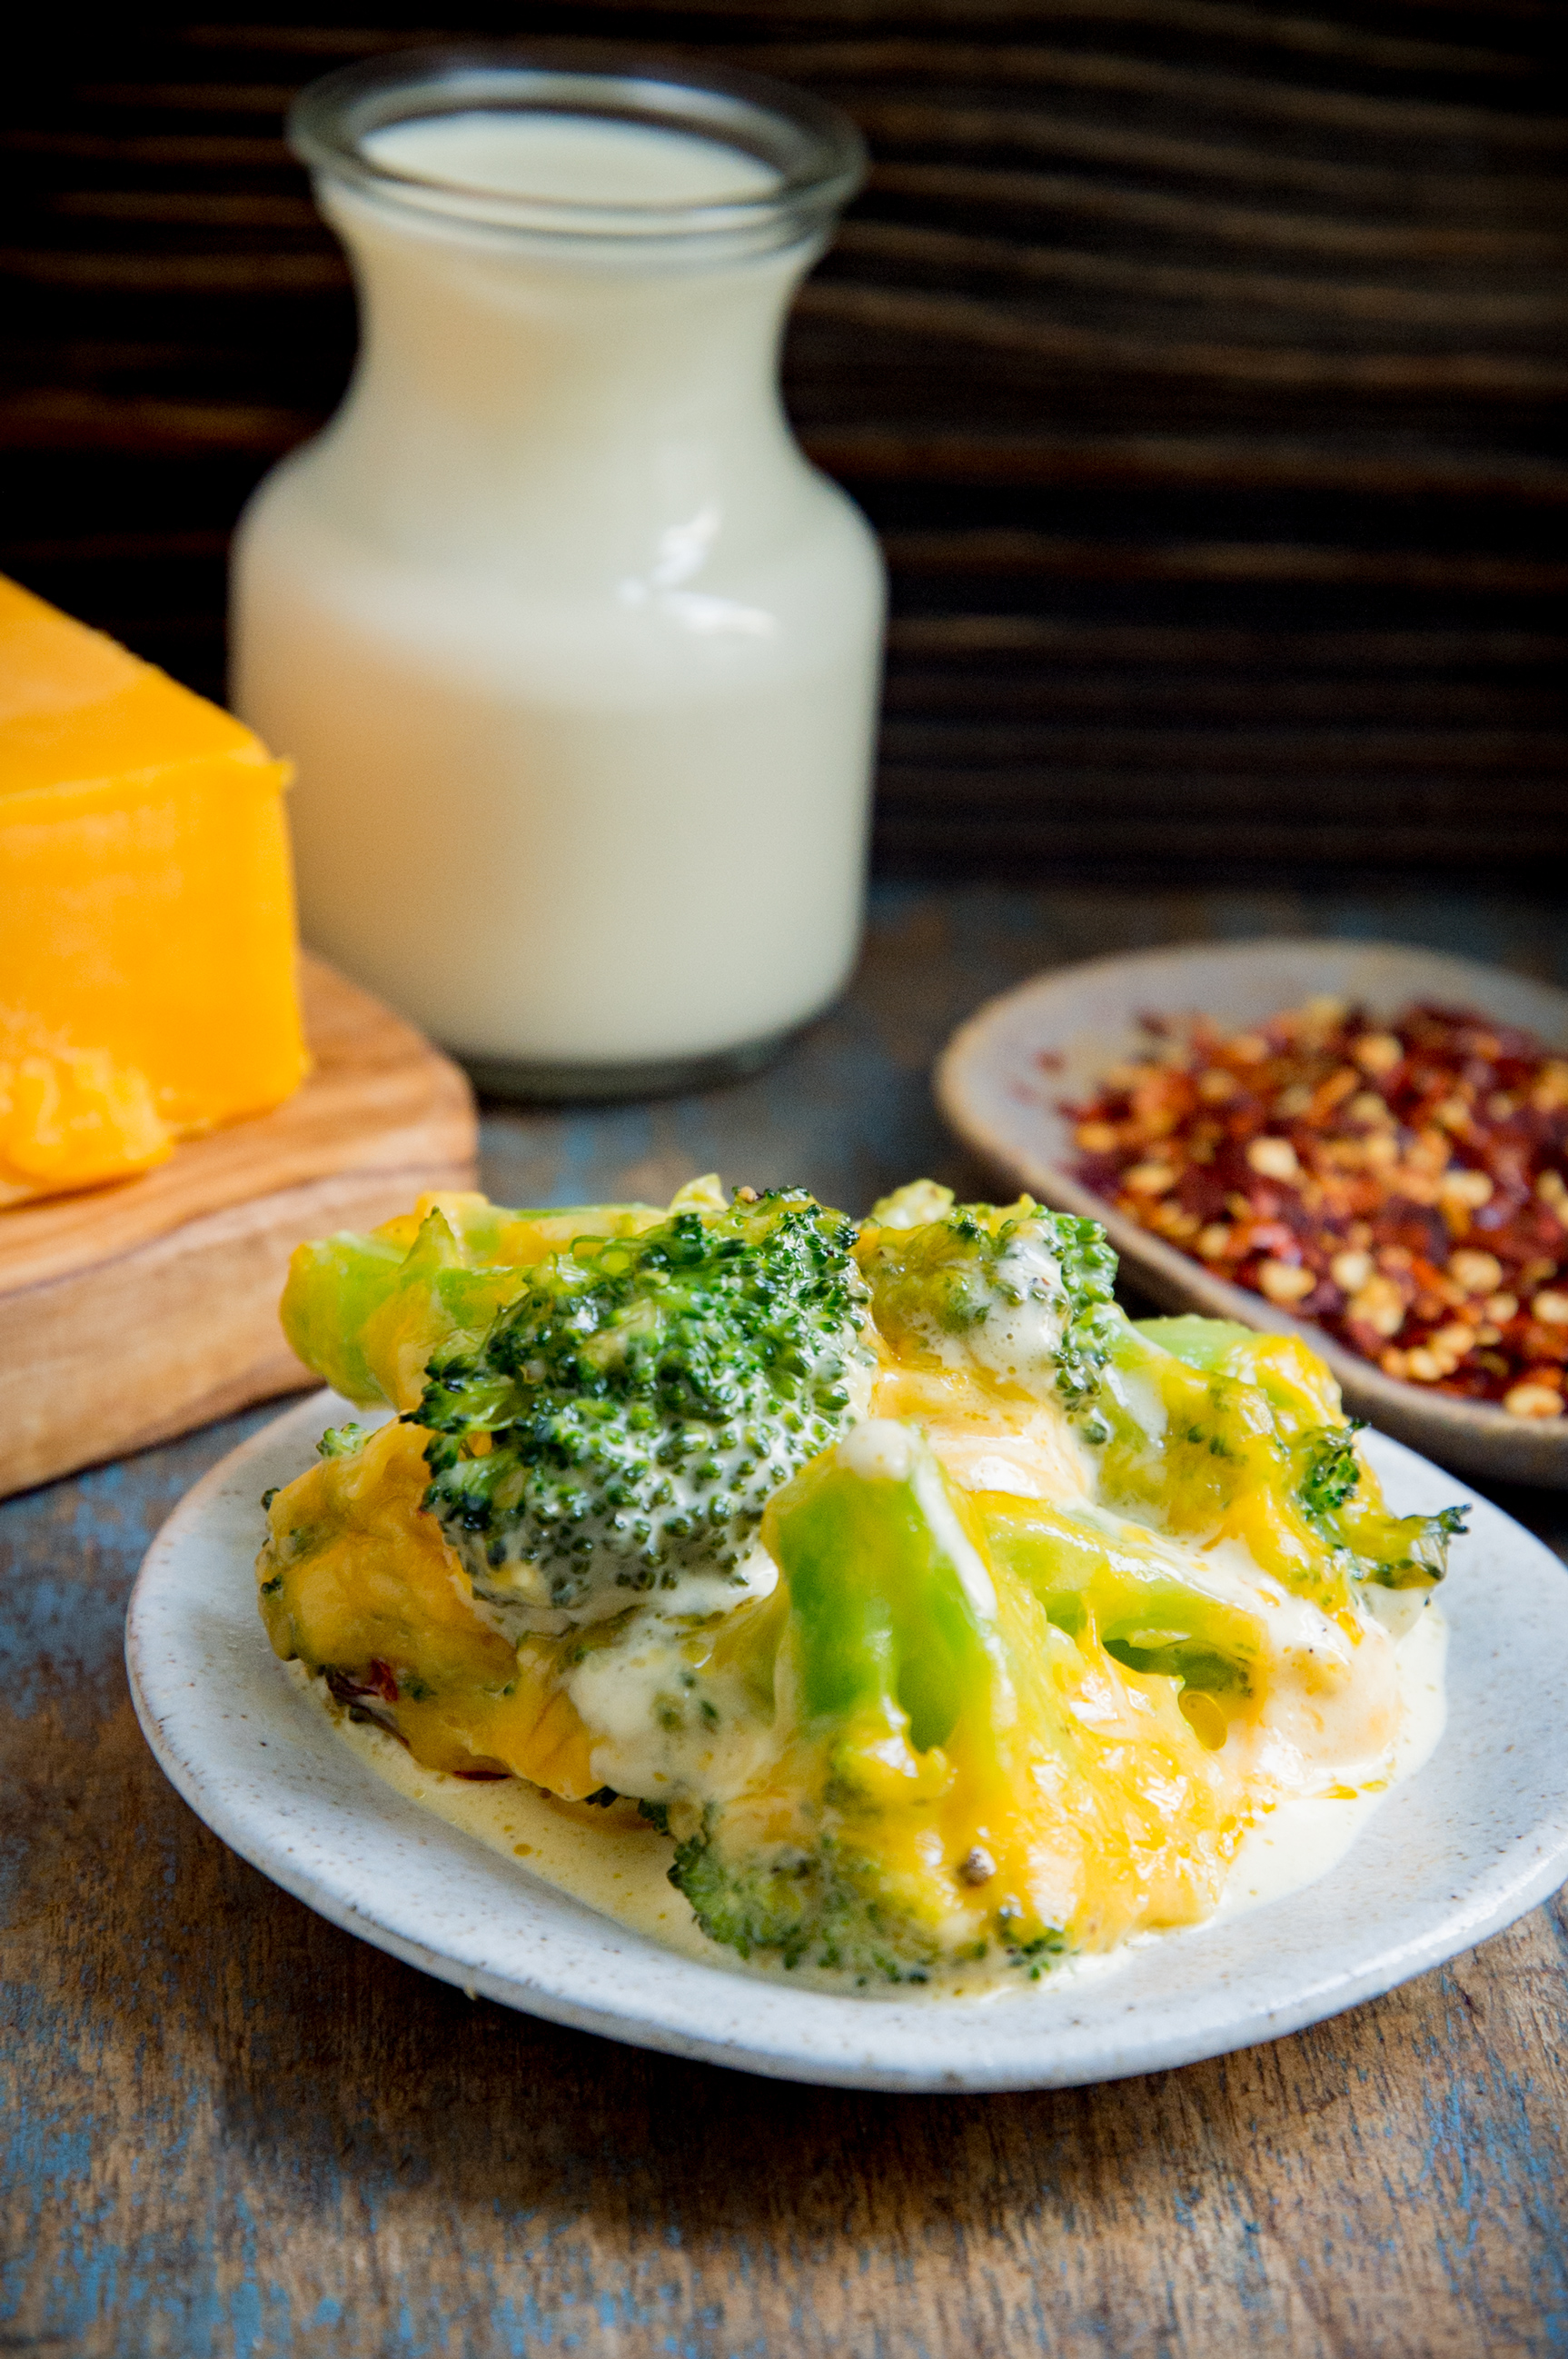 Low-Carb Keto Broccoli Cheese Casserole-served on a plate.